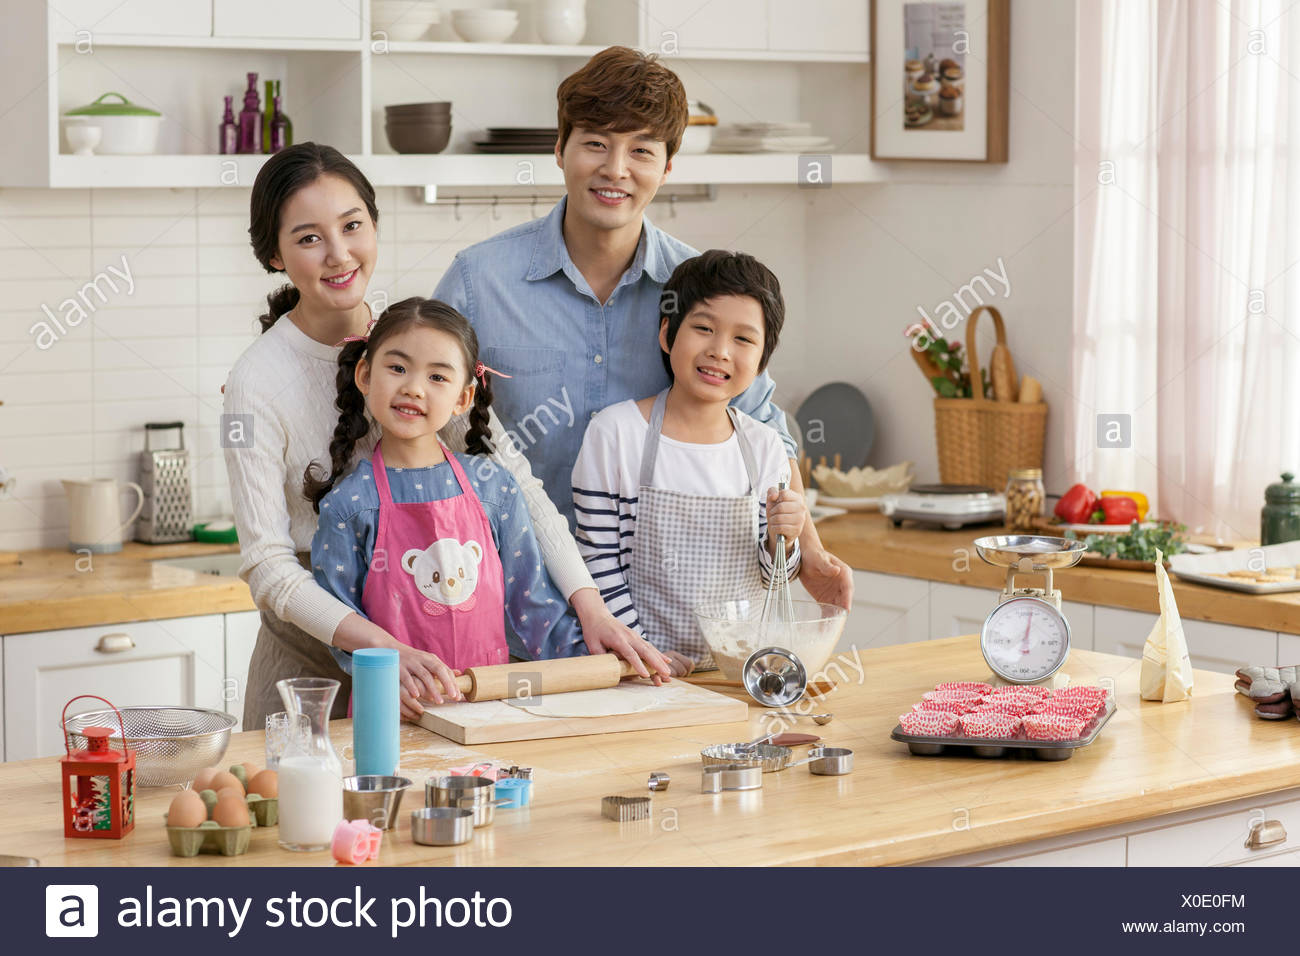 Harmonious family cooking together in kitchen - Stock Image